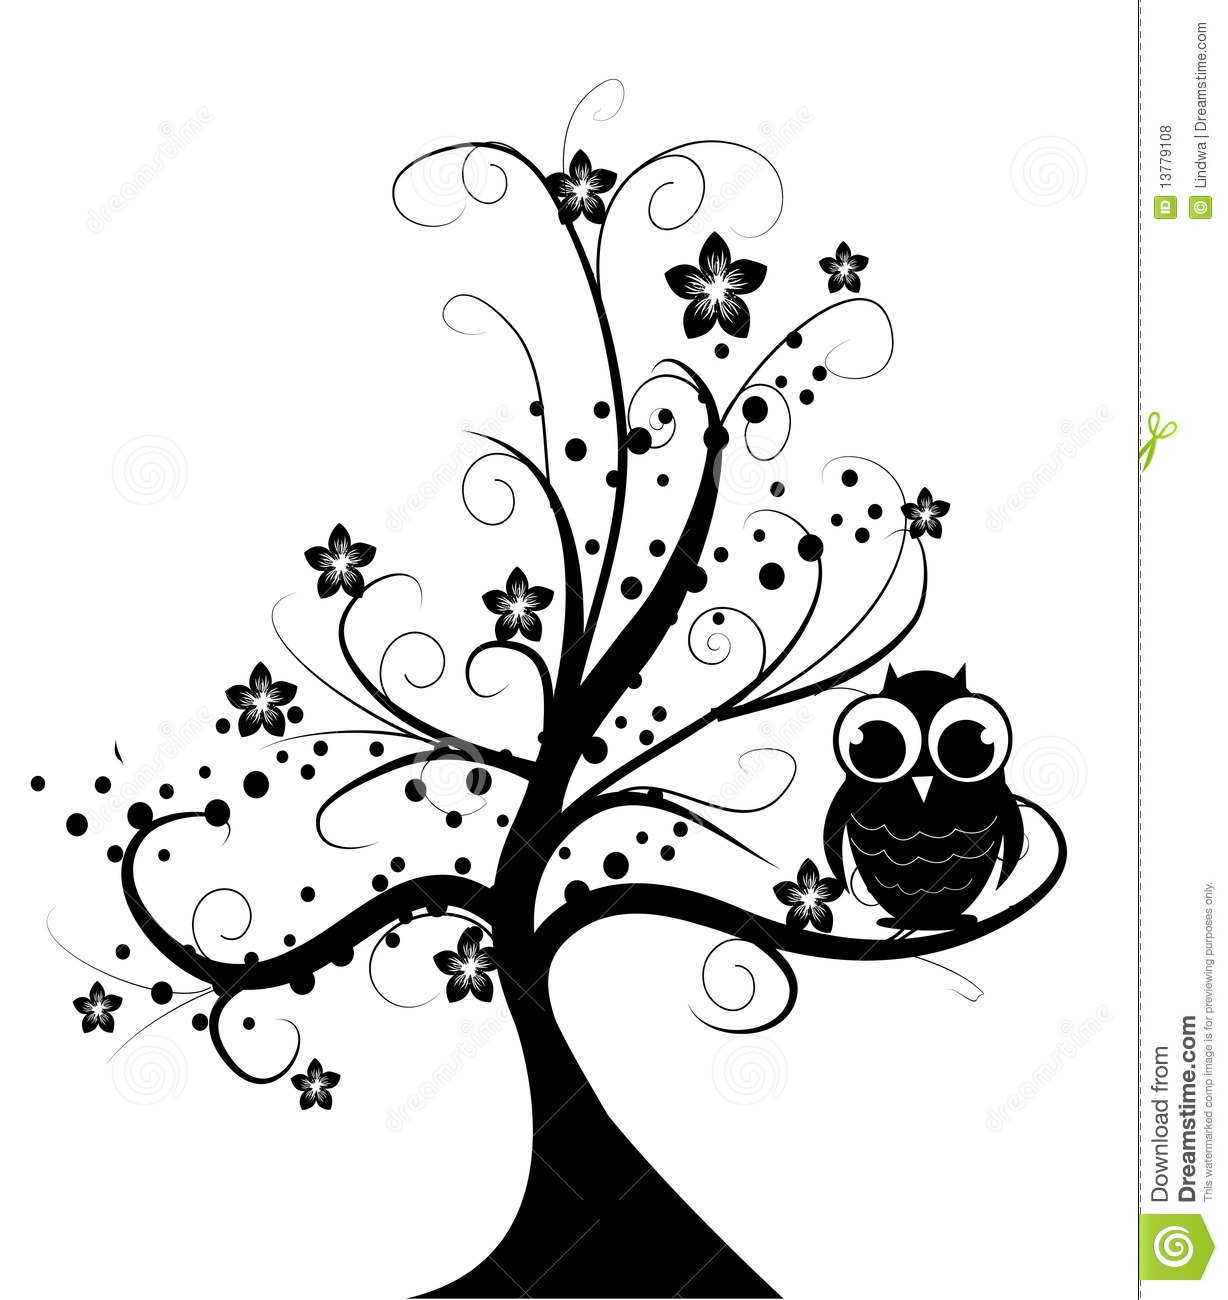 Swirl Wall Stickers Tree With Little Owl Royalty Free Stock Photos Image